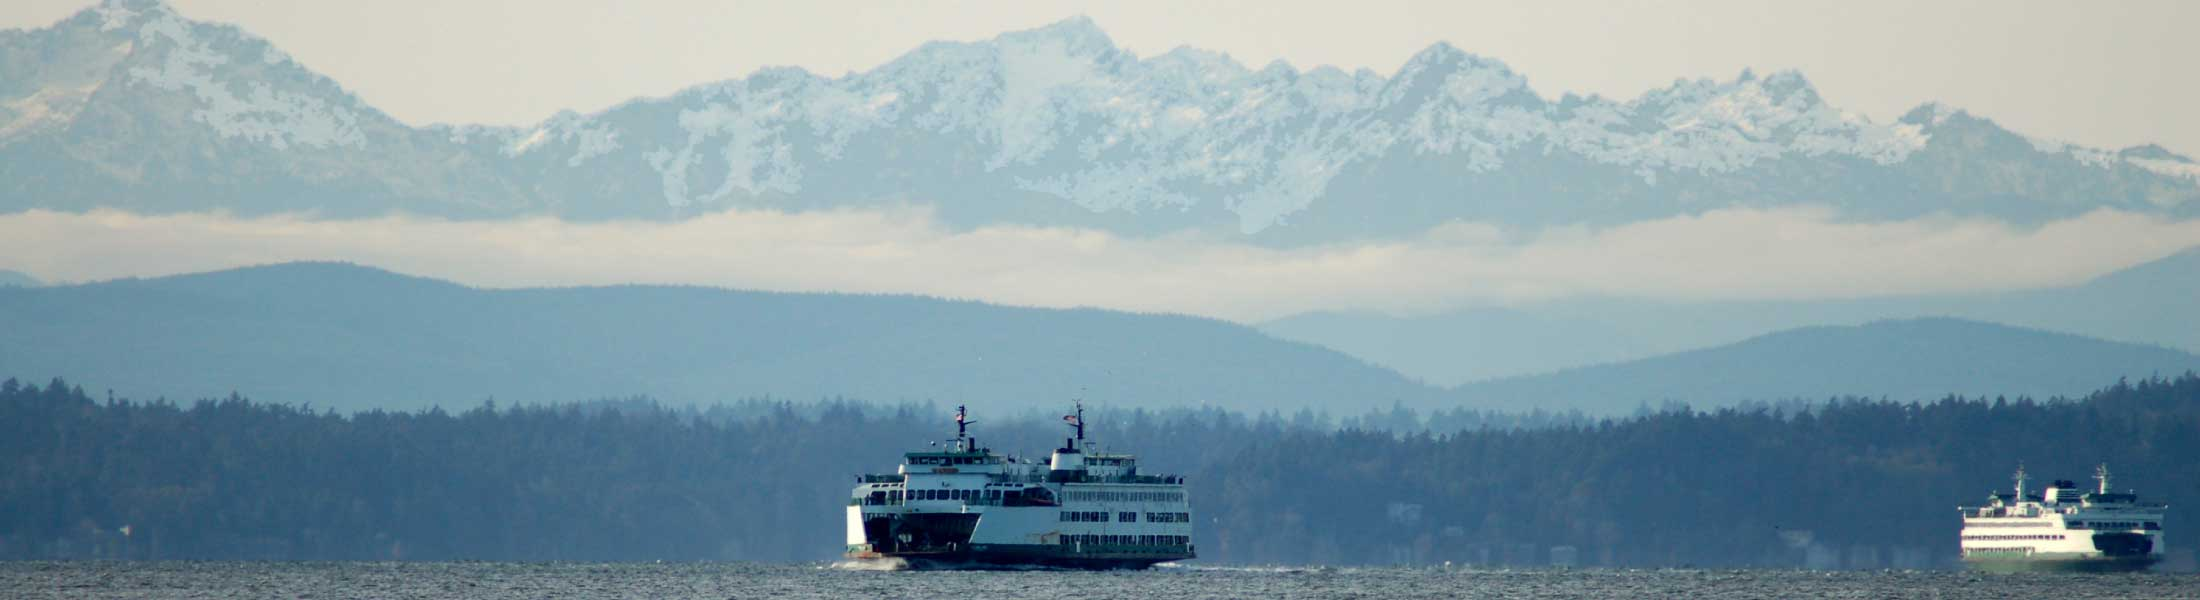 Puget Sound ferry and Olympic mountains